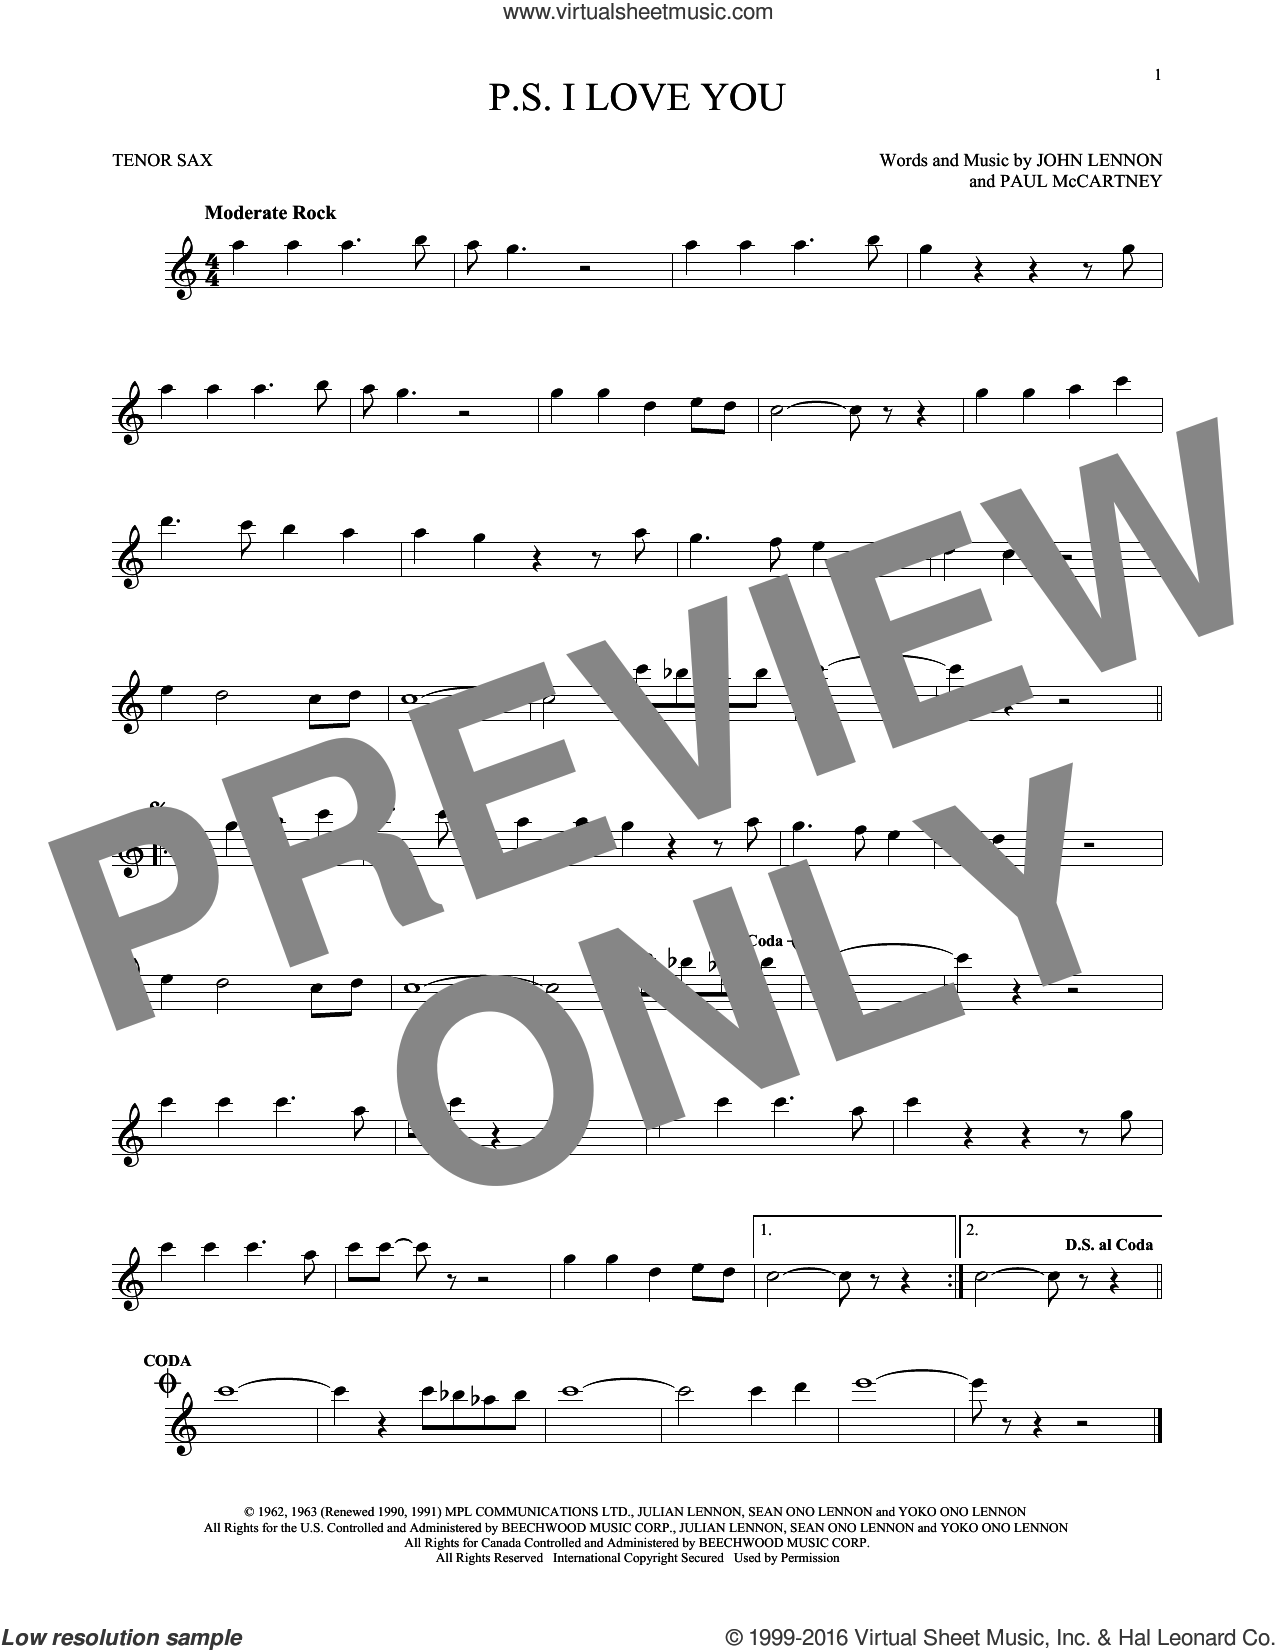 P.S. I Love You sheet music for tenor saxophone solo by The Beatles, John Lennon and Paul McCartney, intermediate skill level